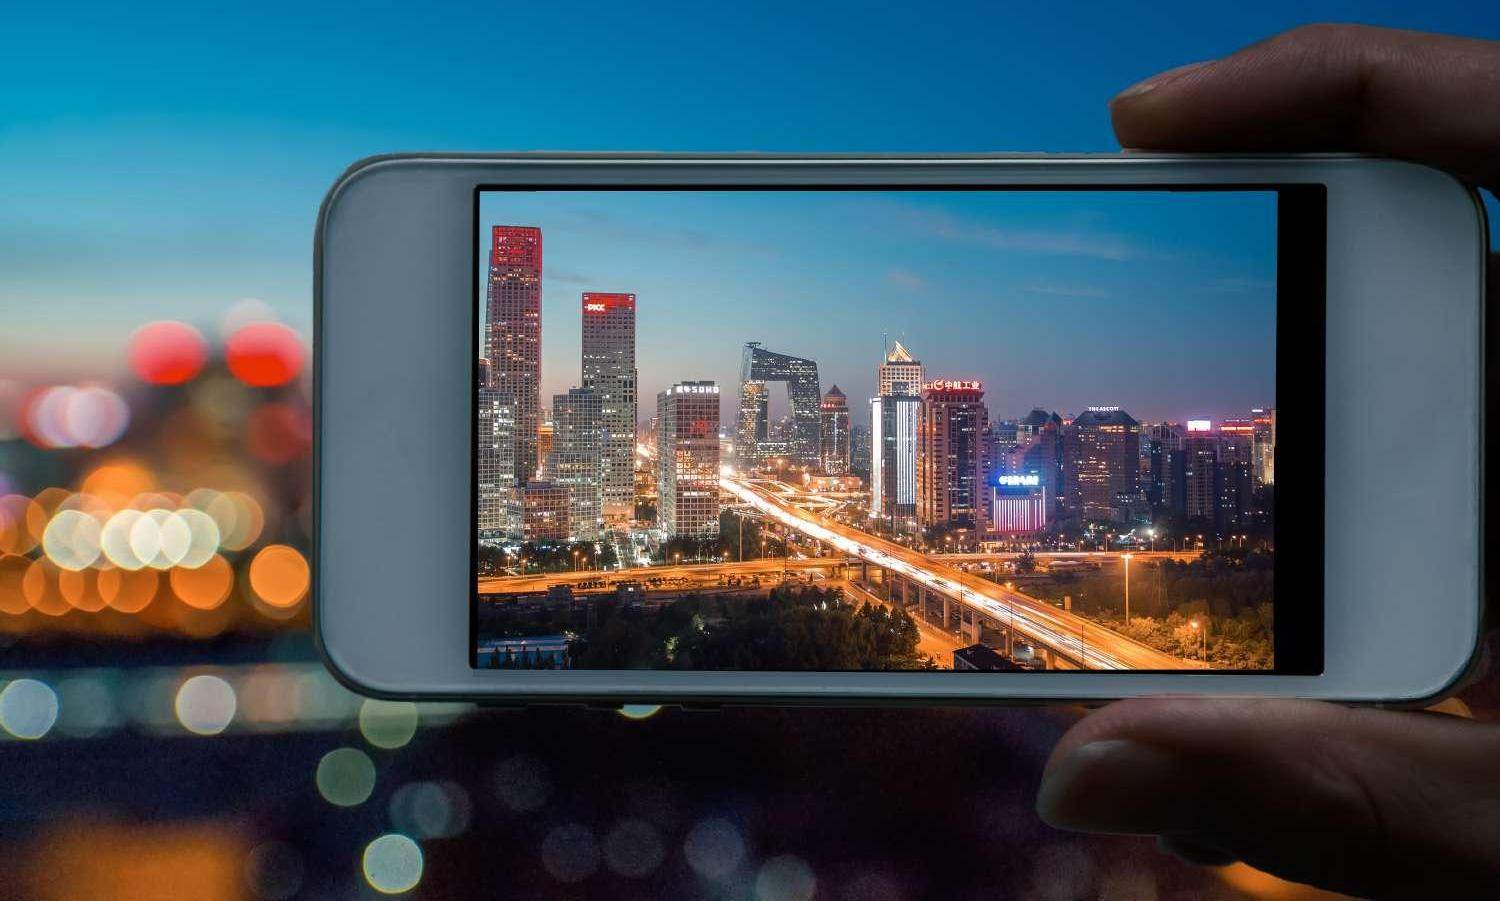 Beijing Skyline City Lights At Night With Iphone Smartphone Frame